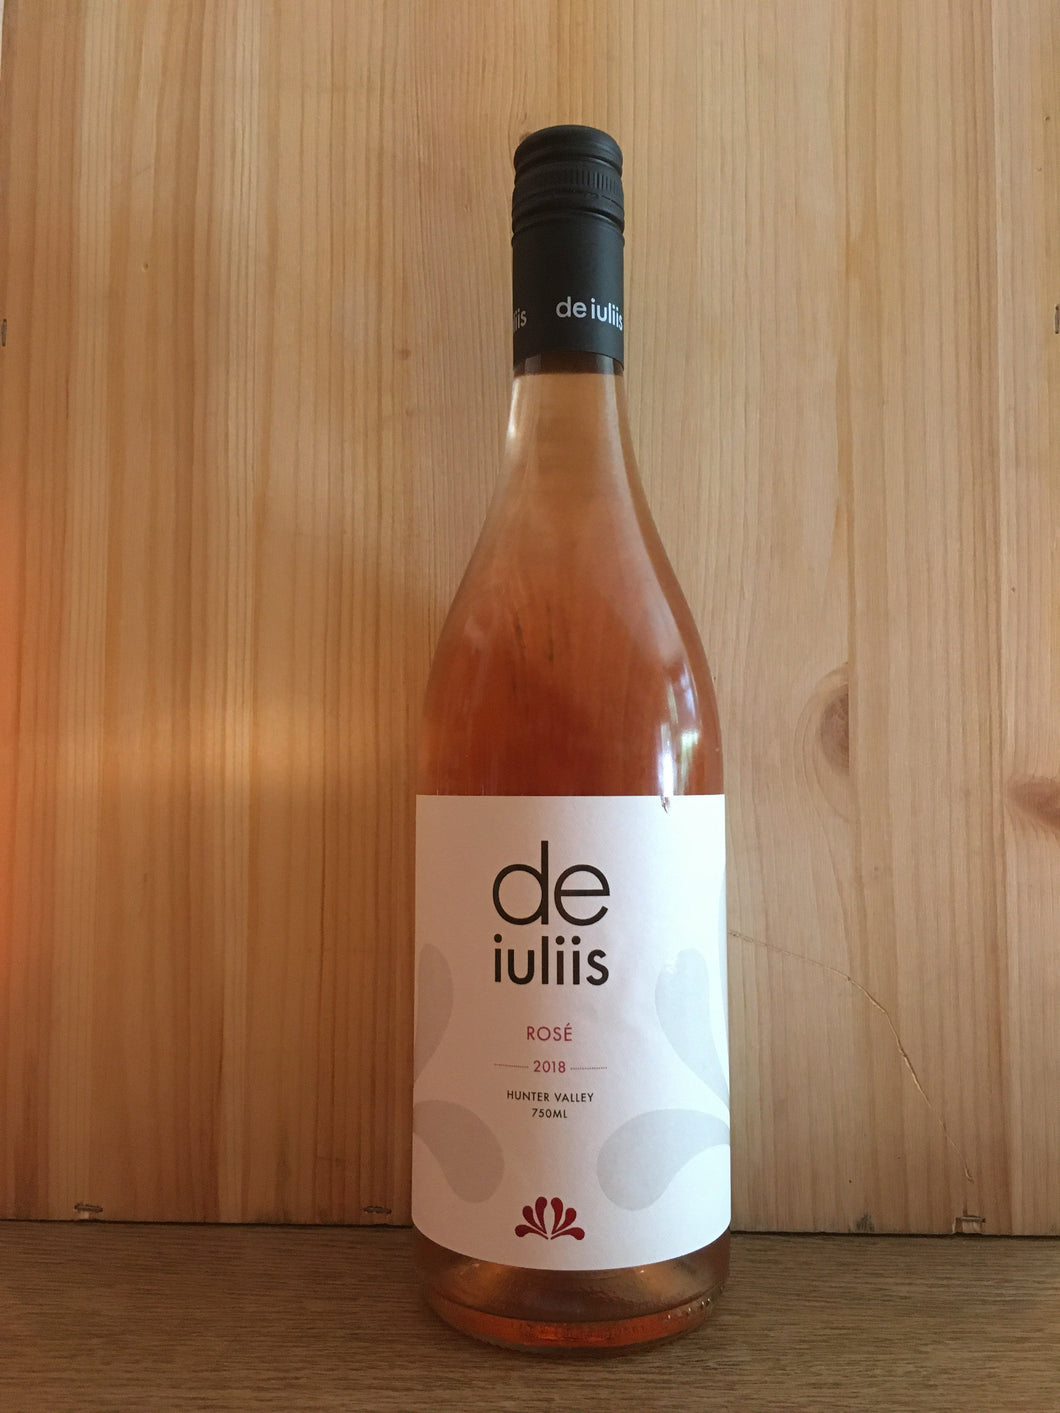 De iuliis Rose Hunter Valley 2019